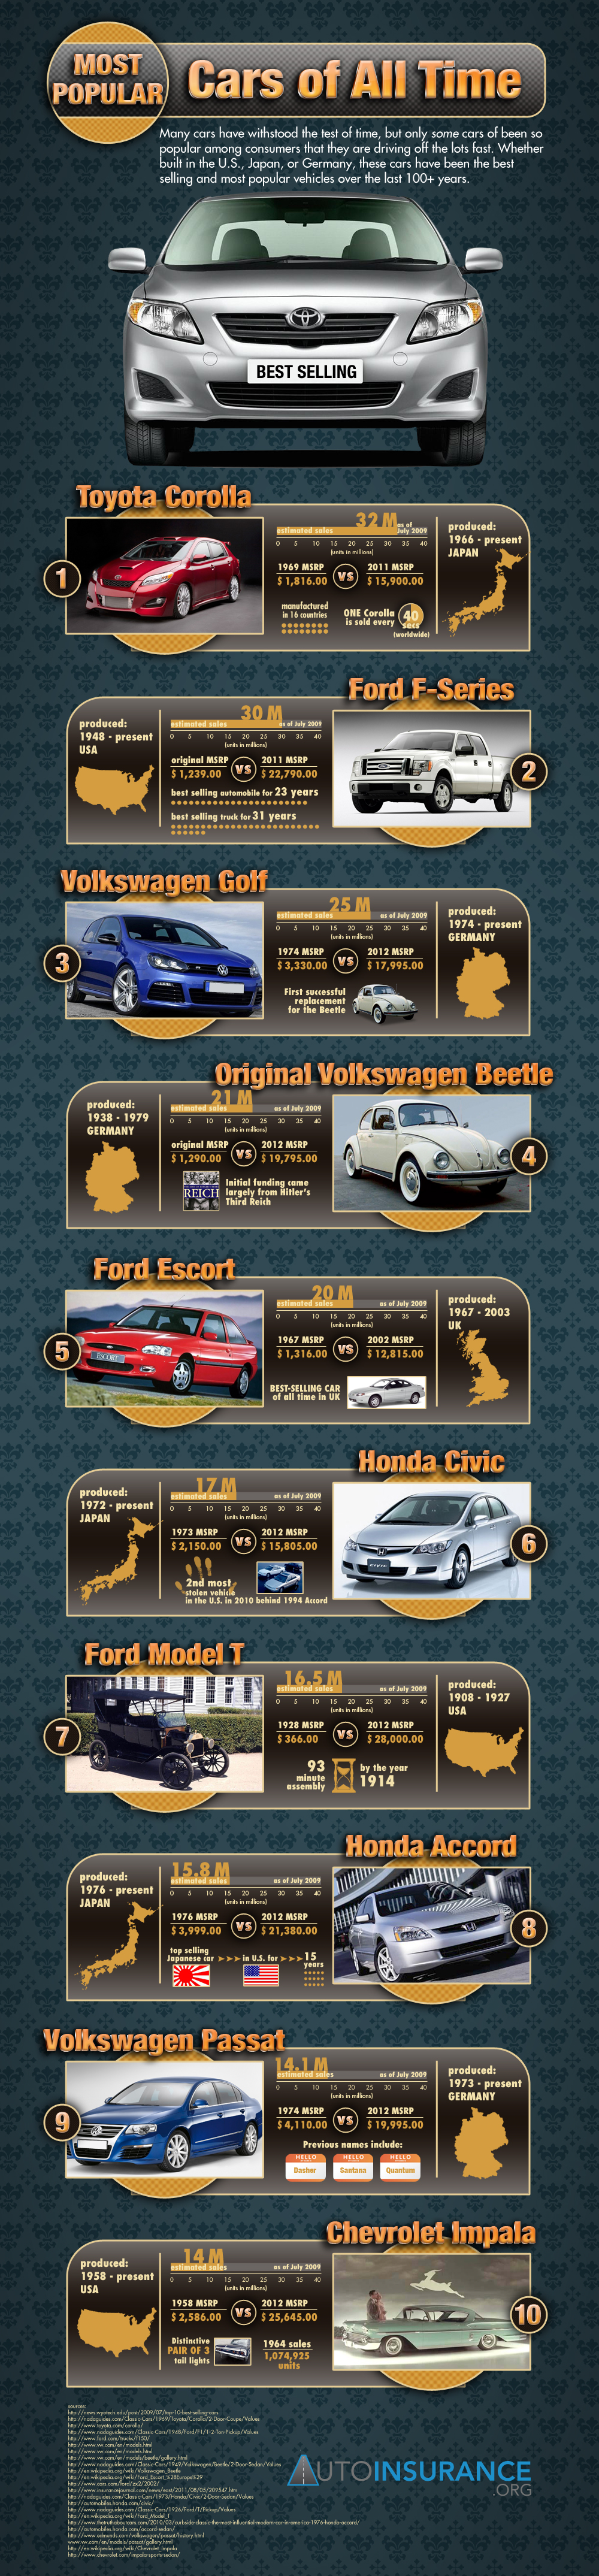 Top 10 Most Popular Cars of All Time